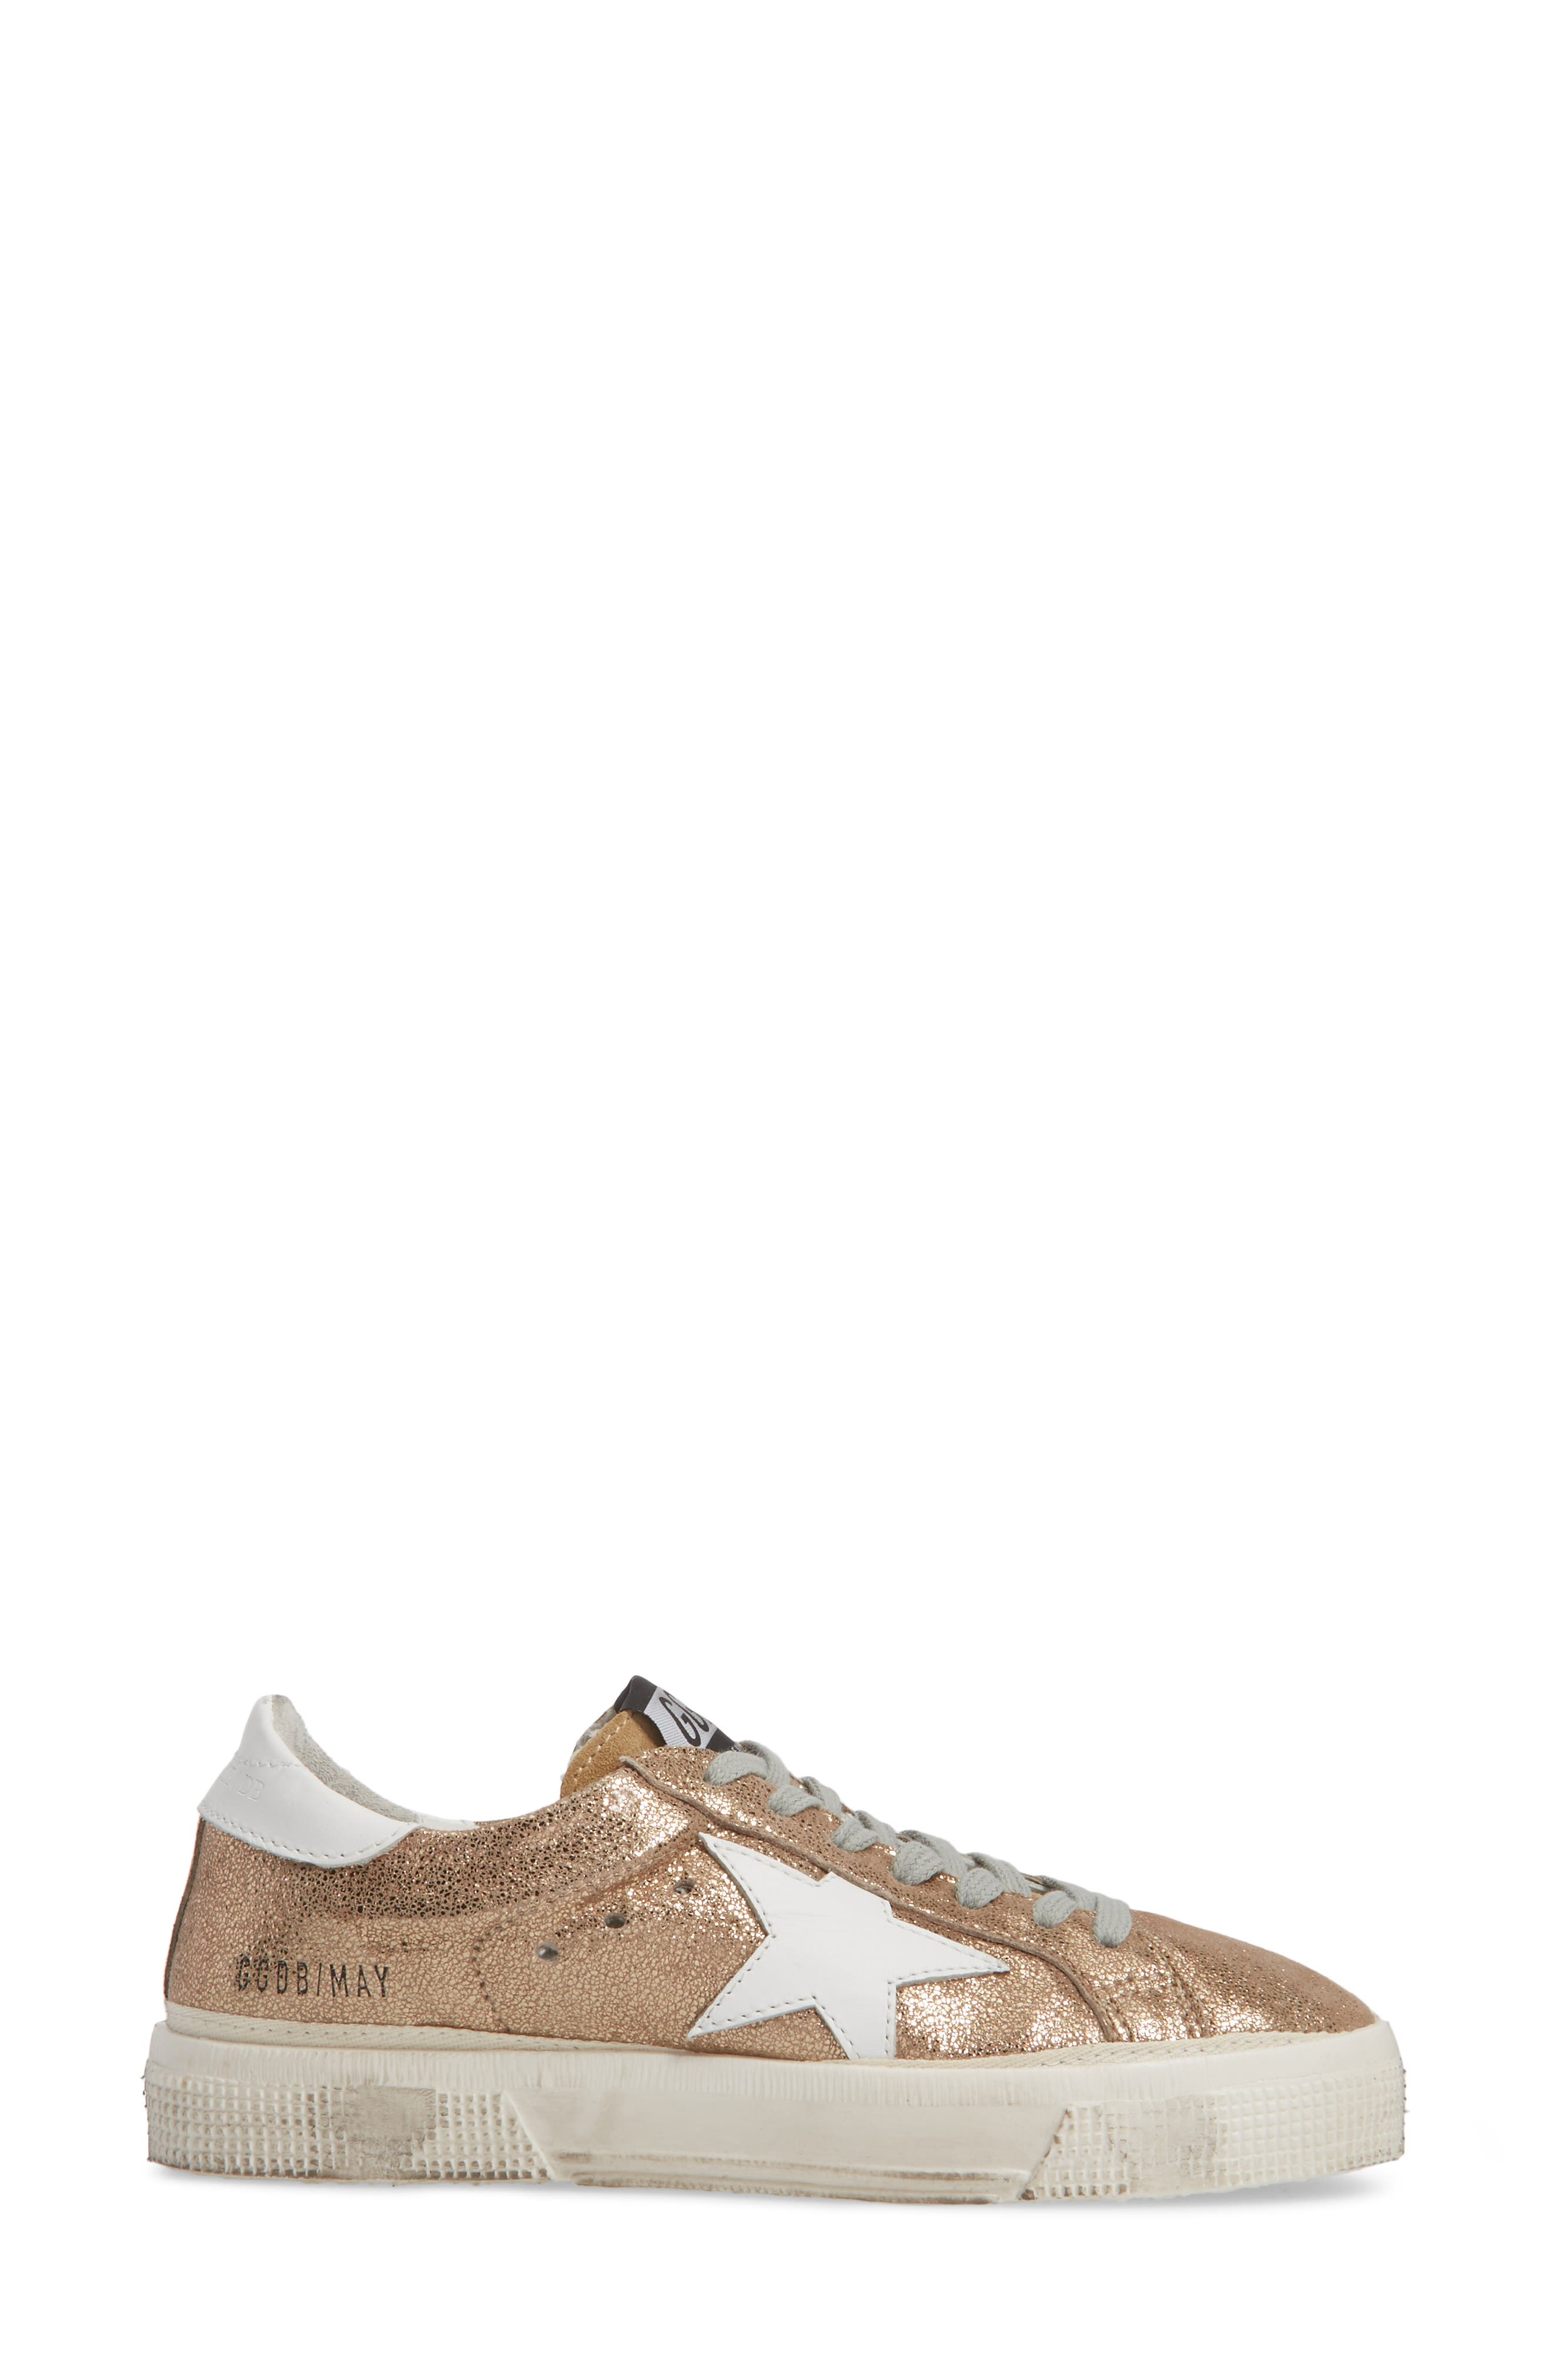 May Metallic Low Top Sneaker,                             Alternate thumbnail 3, color,                             Gold/ White